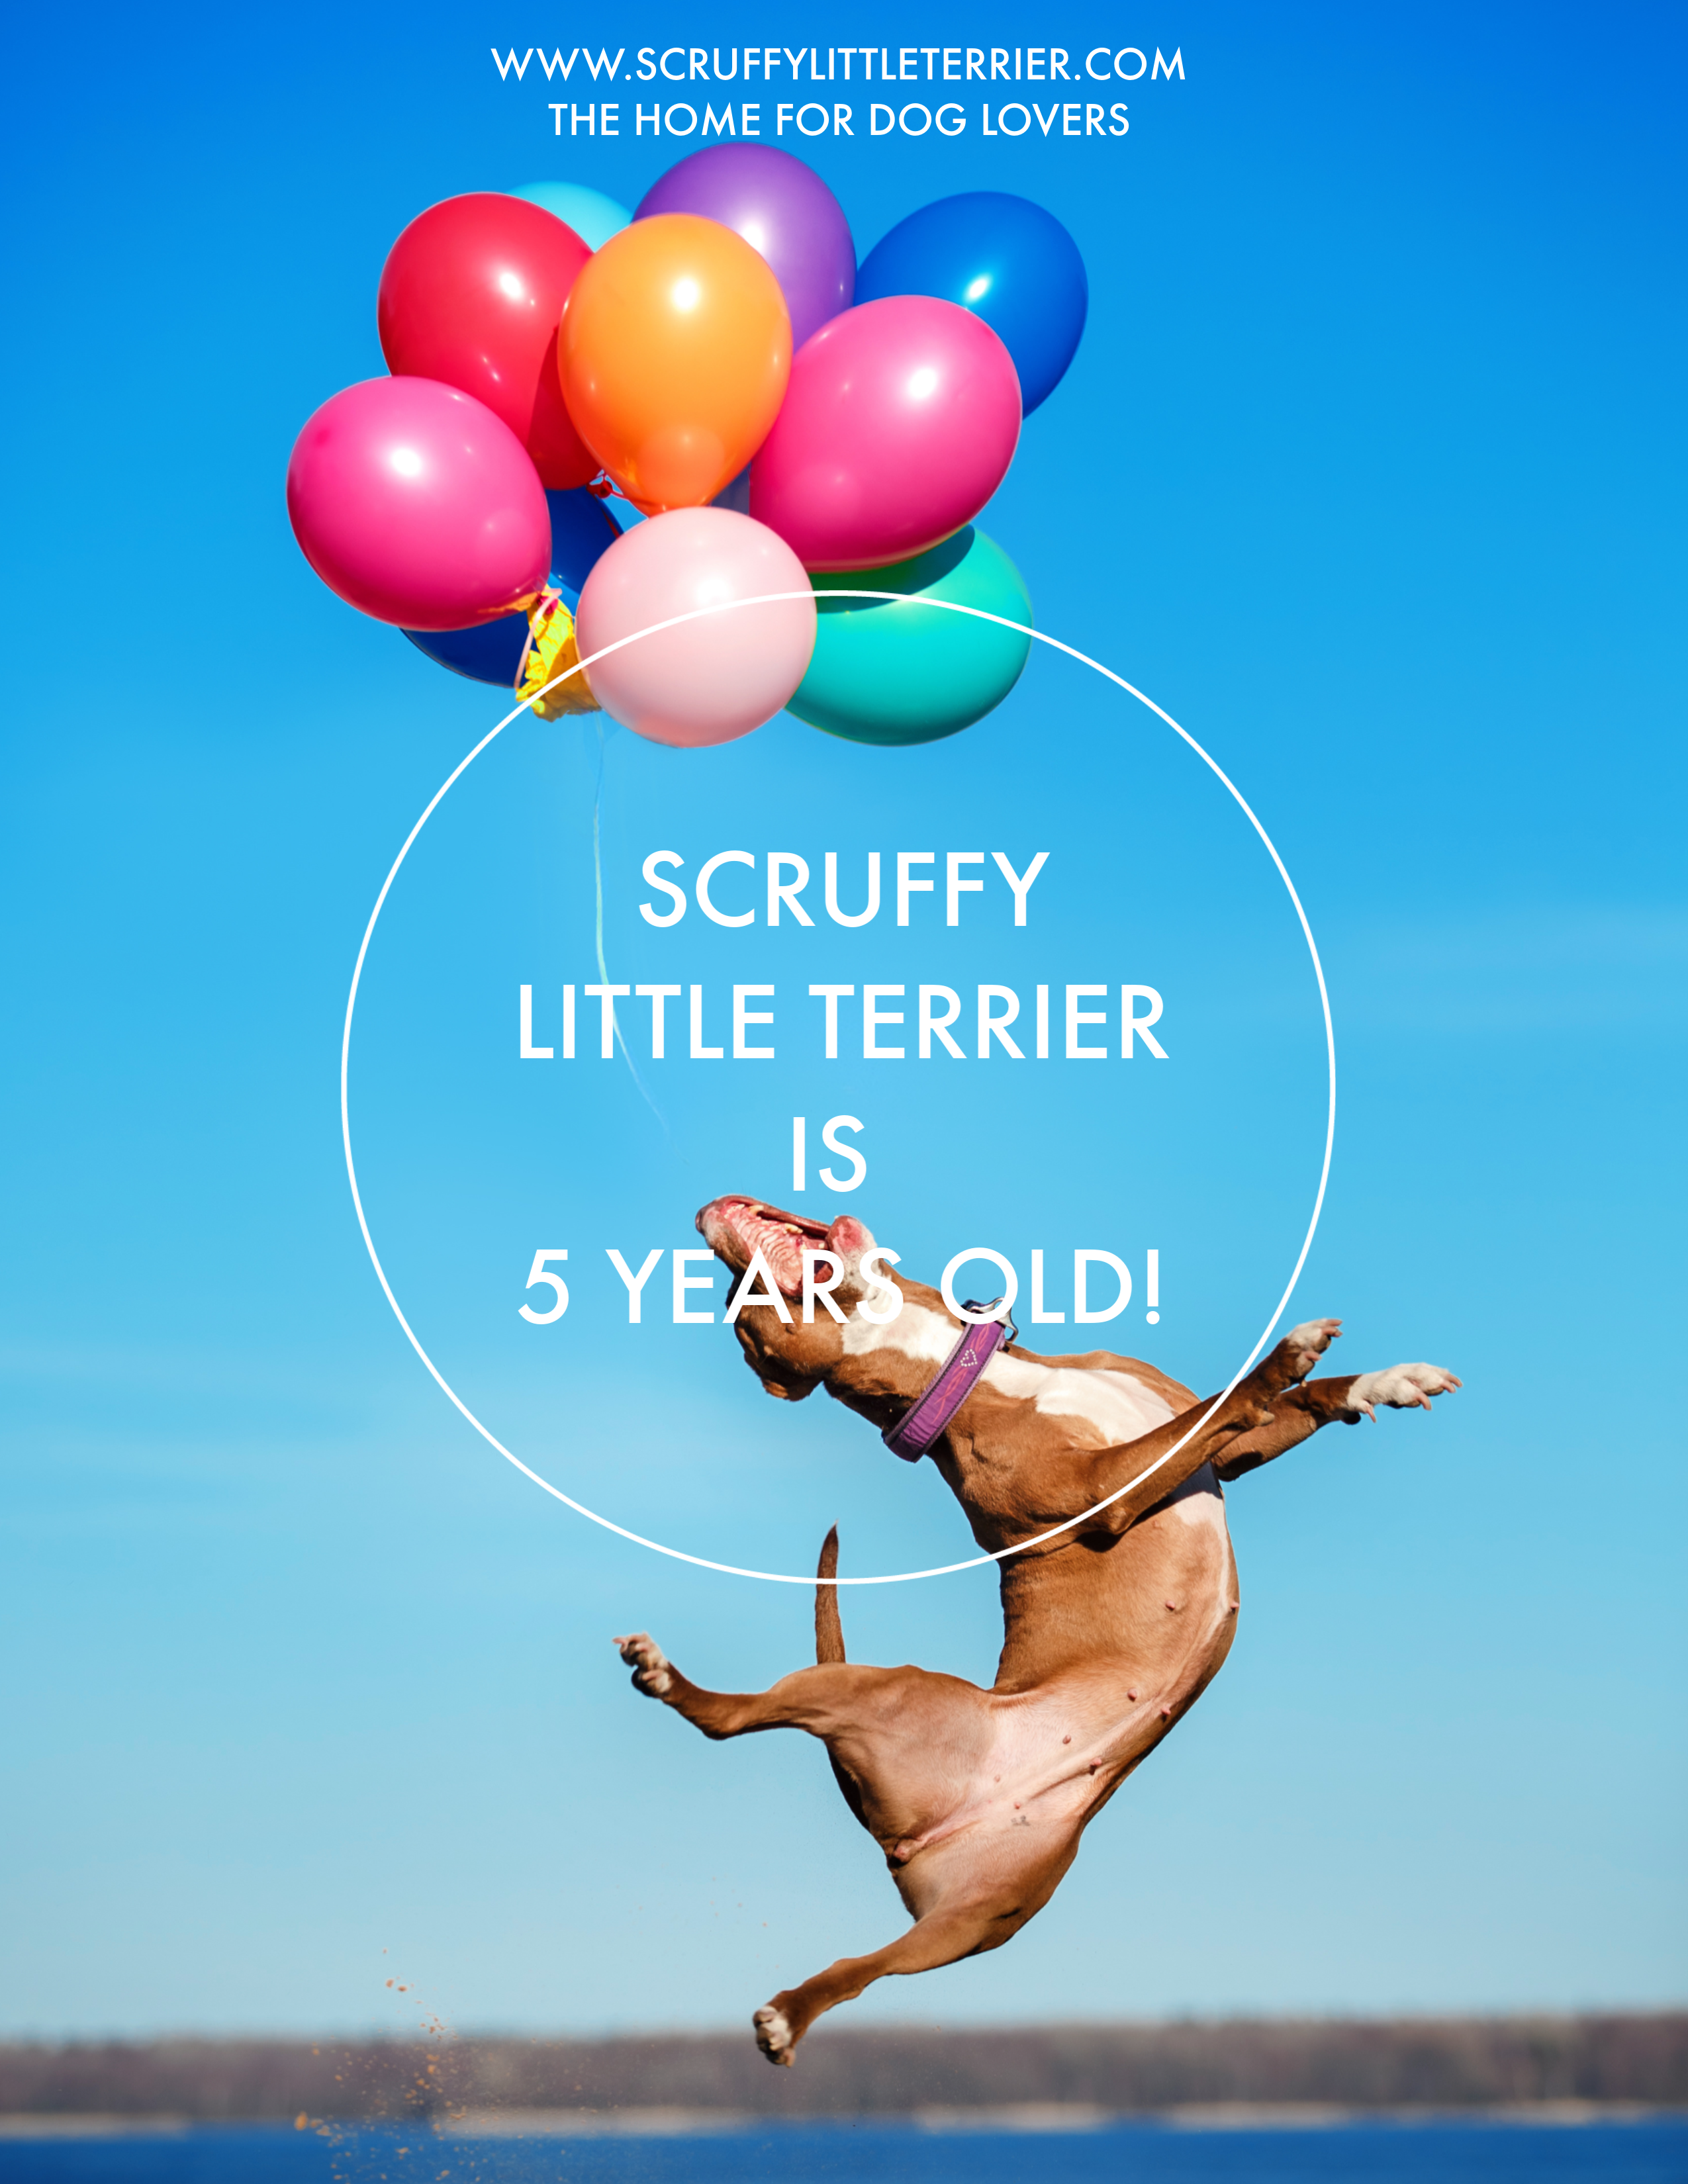 Scruffy Little Terrier is 5 Years Old {Blogaversary} #PetInfluencer #DogBlogger #DogBlog #Blogaversary www.scruffylittleterrier.com